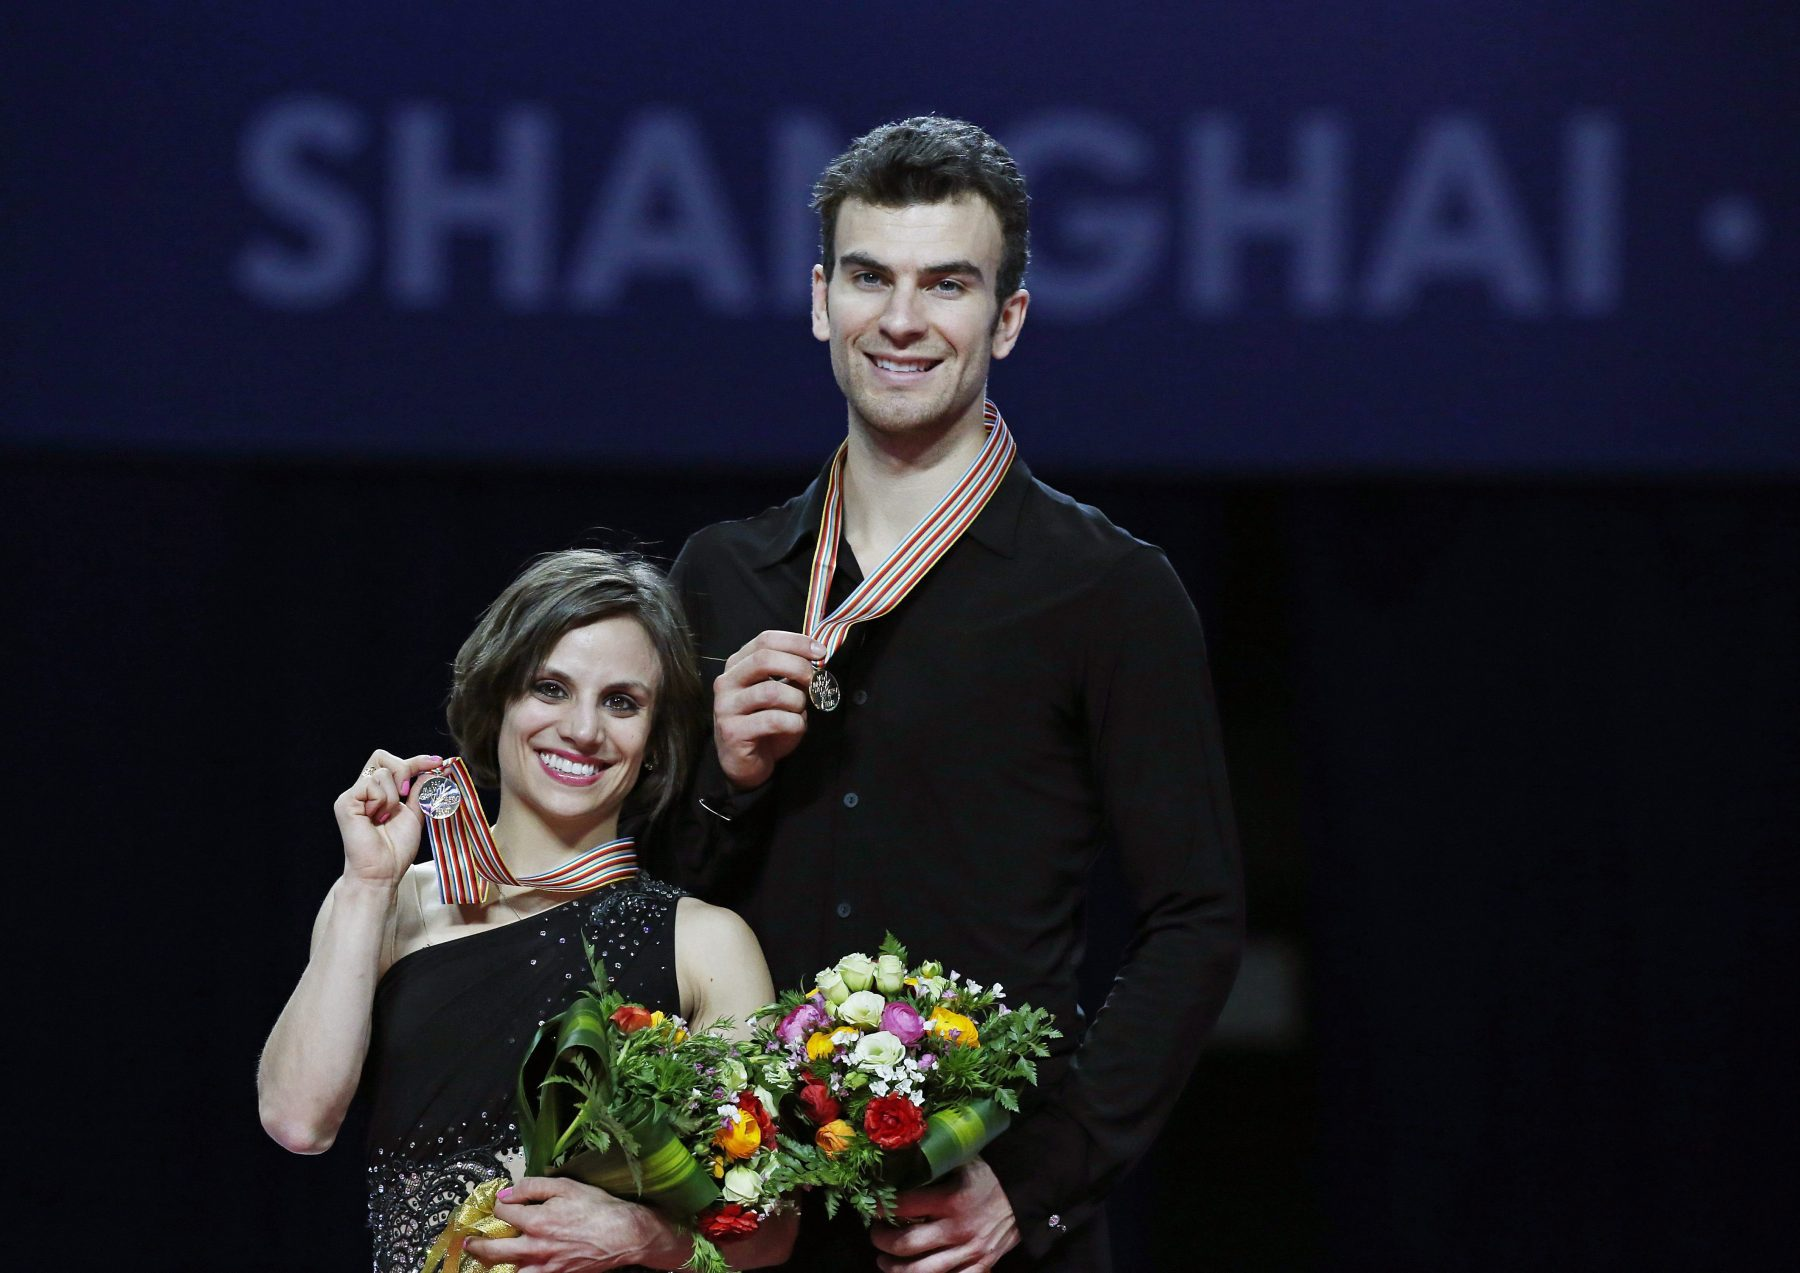 Meagan Duhamel and Eric Radford with their gold medals from the 2015 World Championships